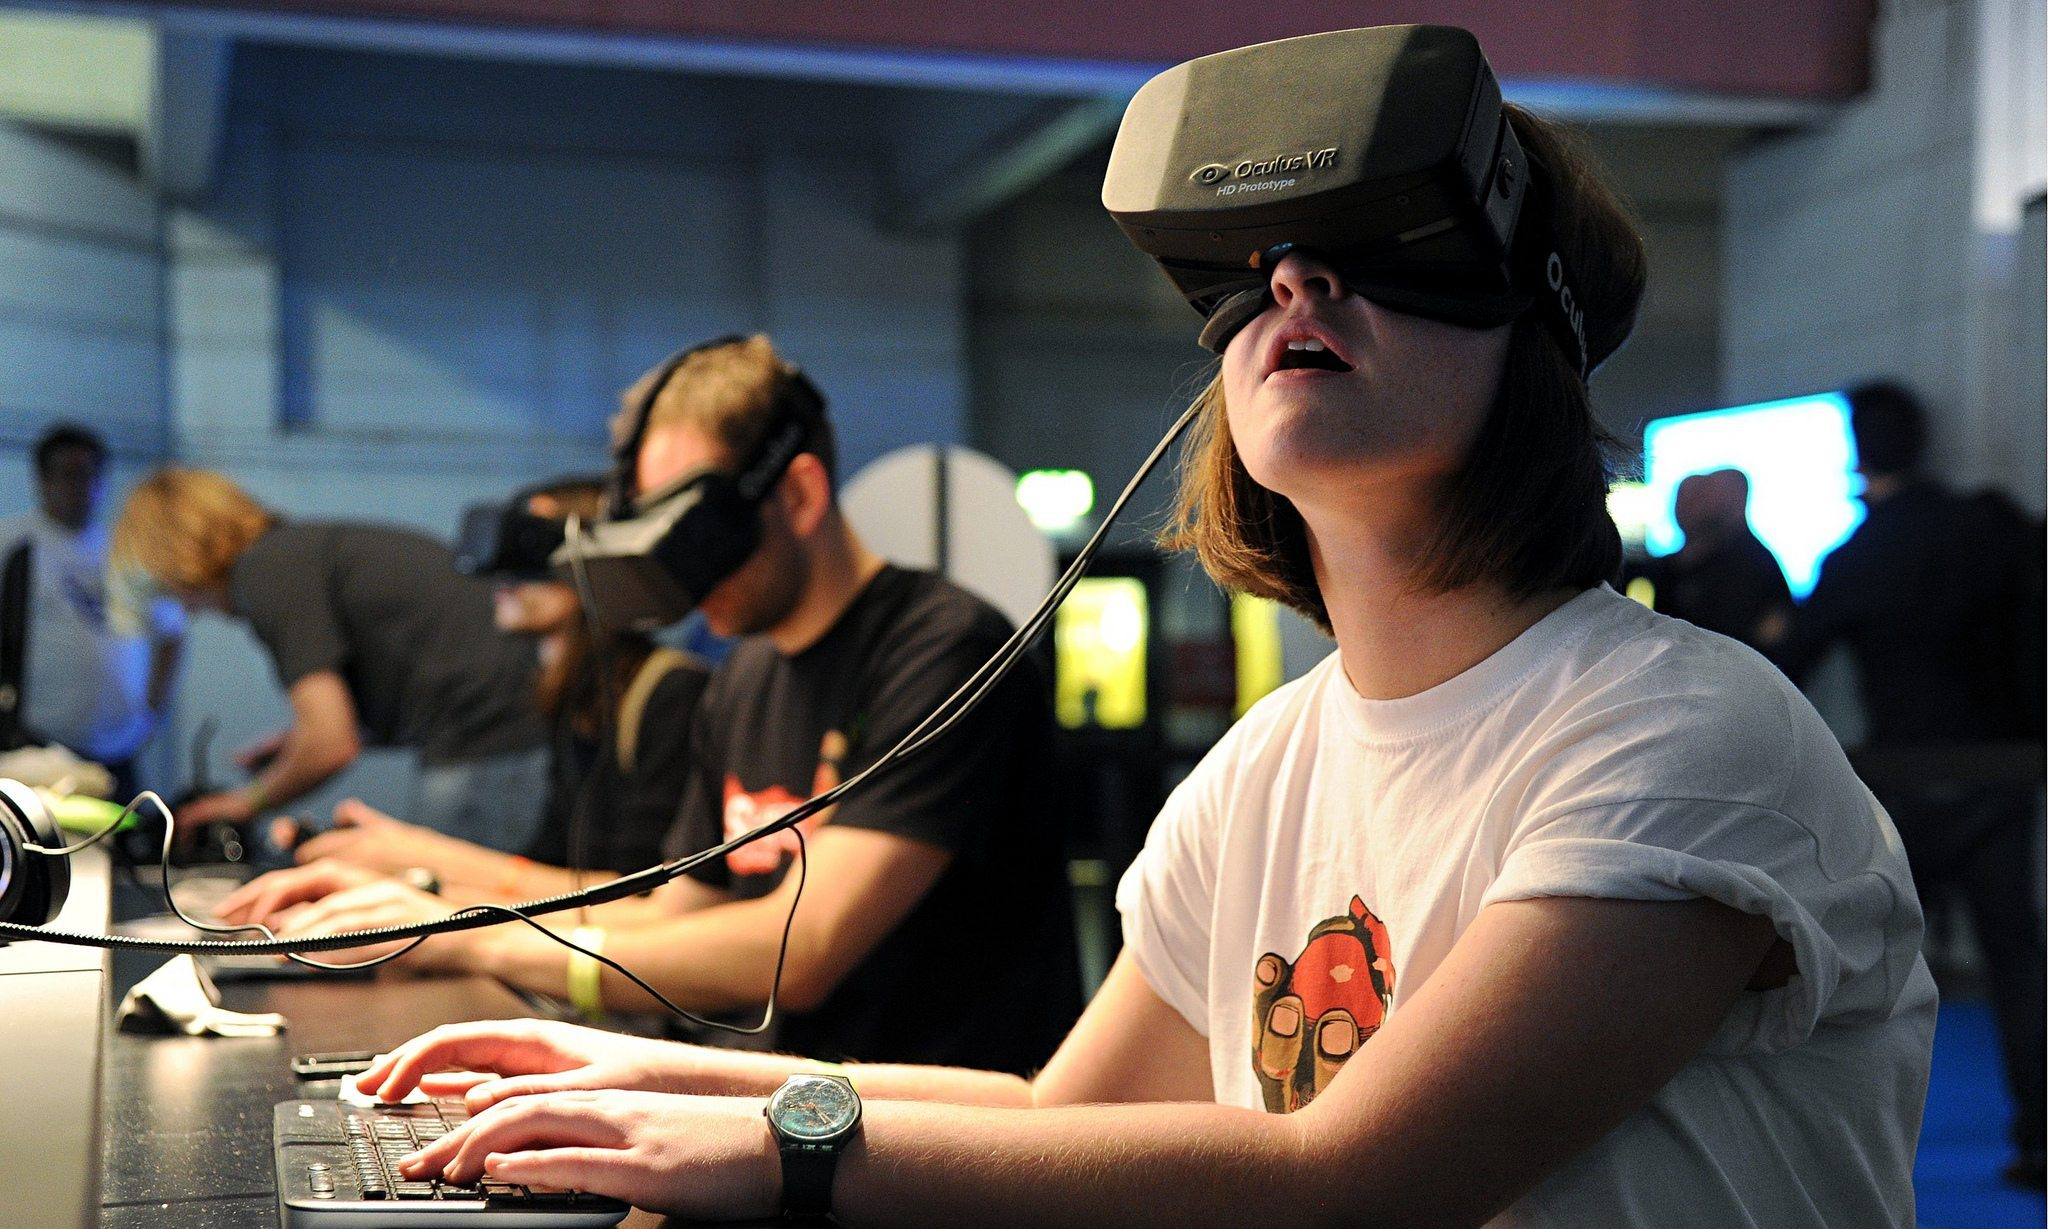 Image: A woman wearing a virtual reality headset